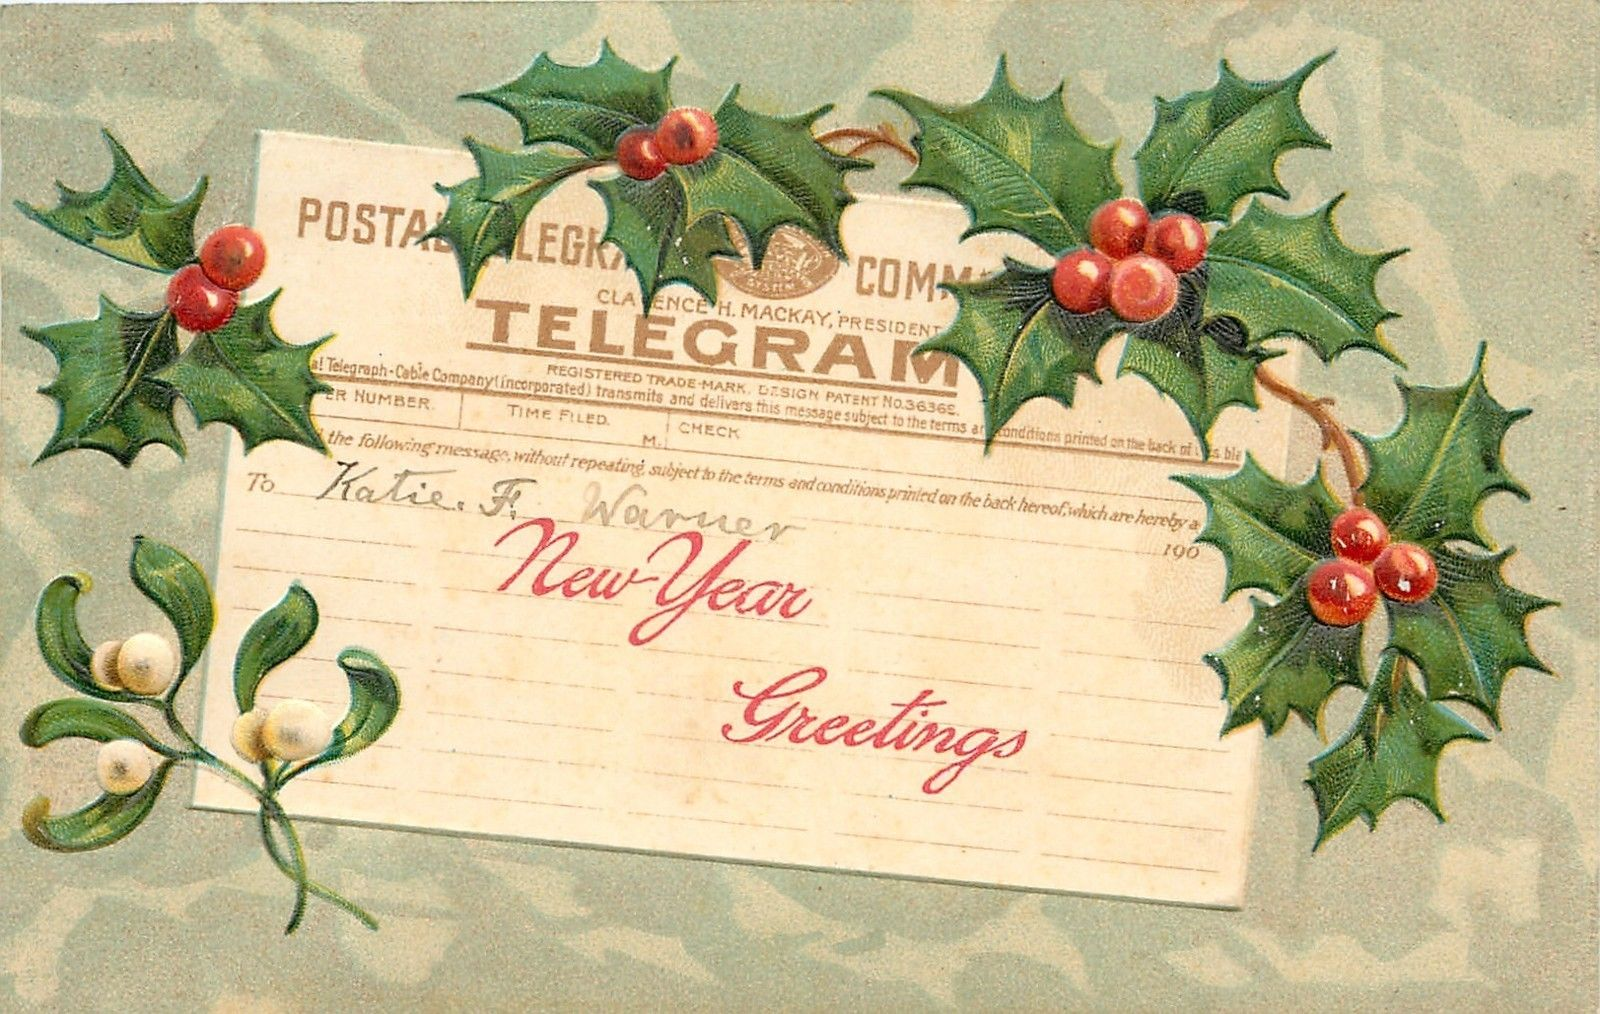 new year postal telegram message greeting mistletoe holly berry mint emboss pfb ebay